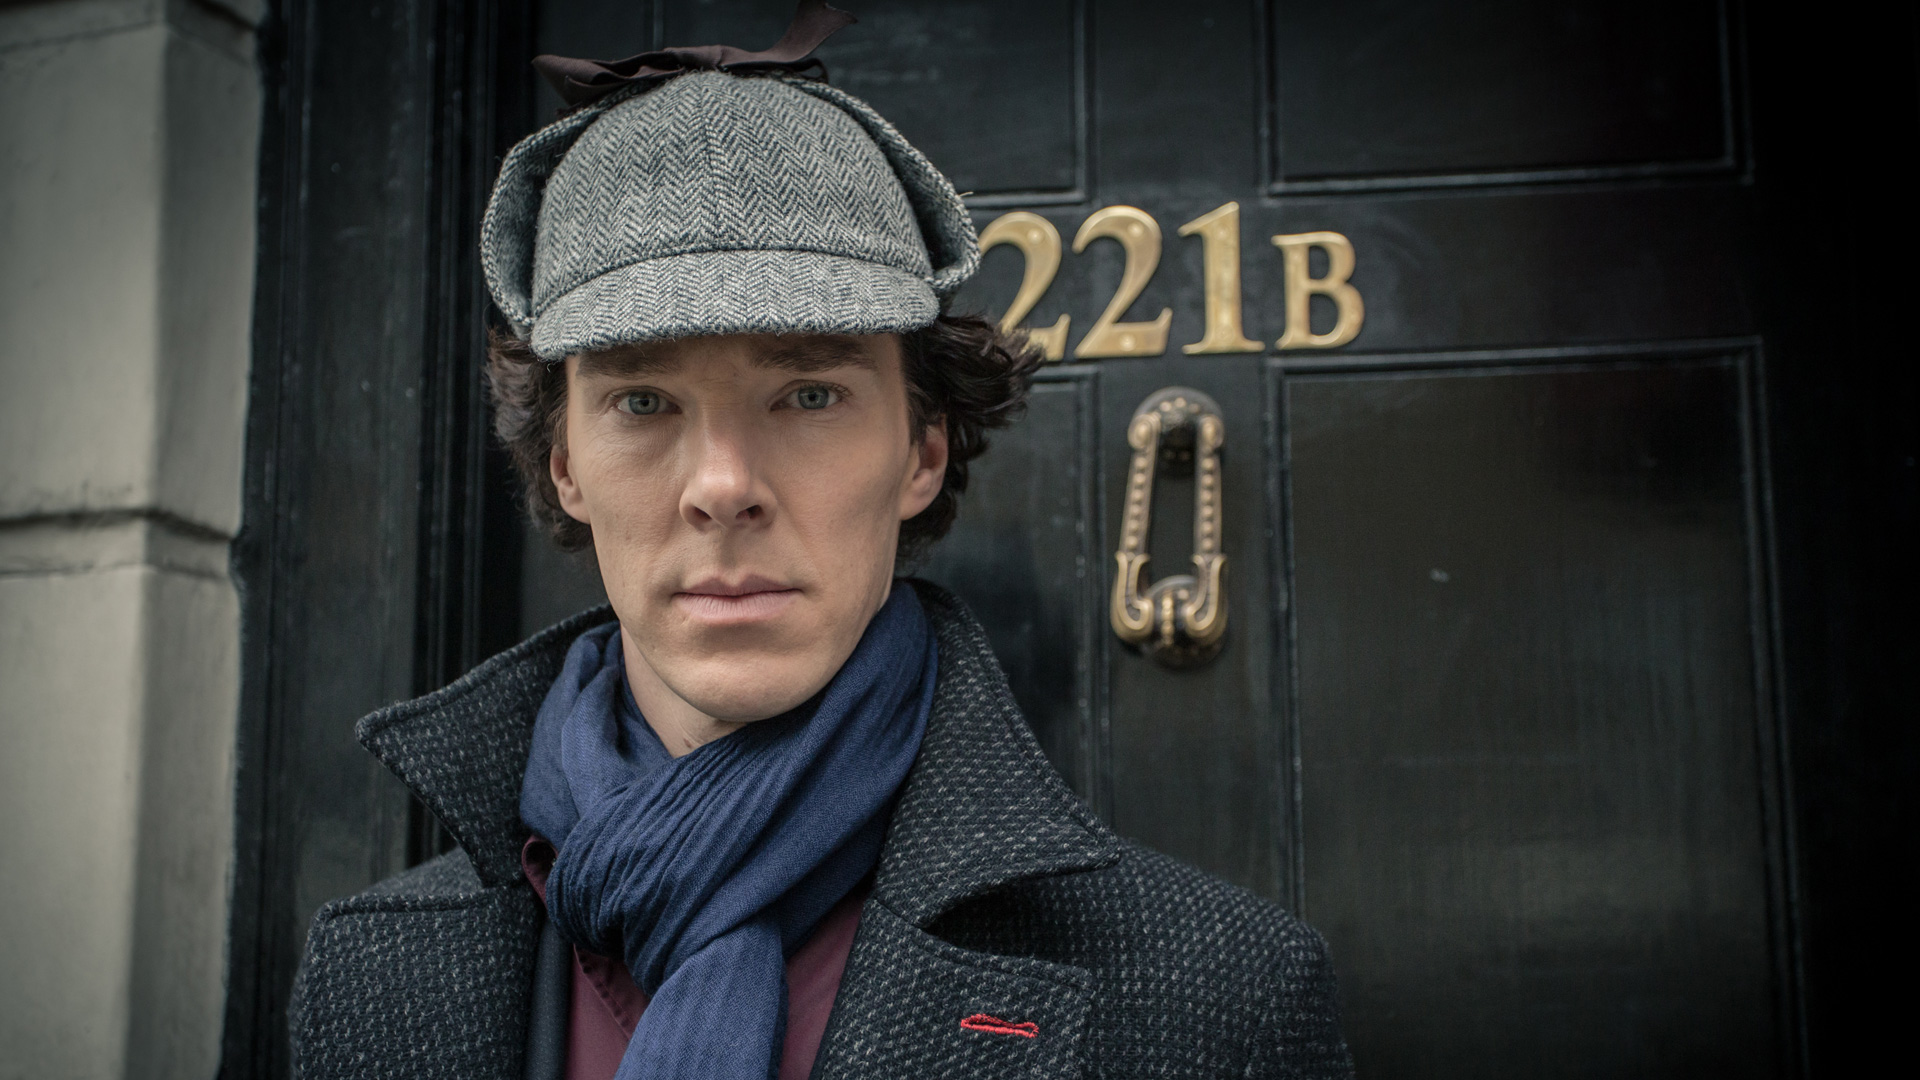 mast-sherlock-s3-mini-episode-hires_1_.jpg